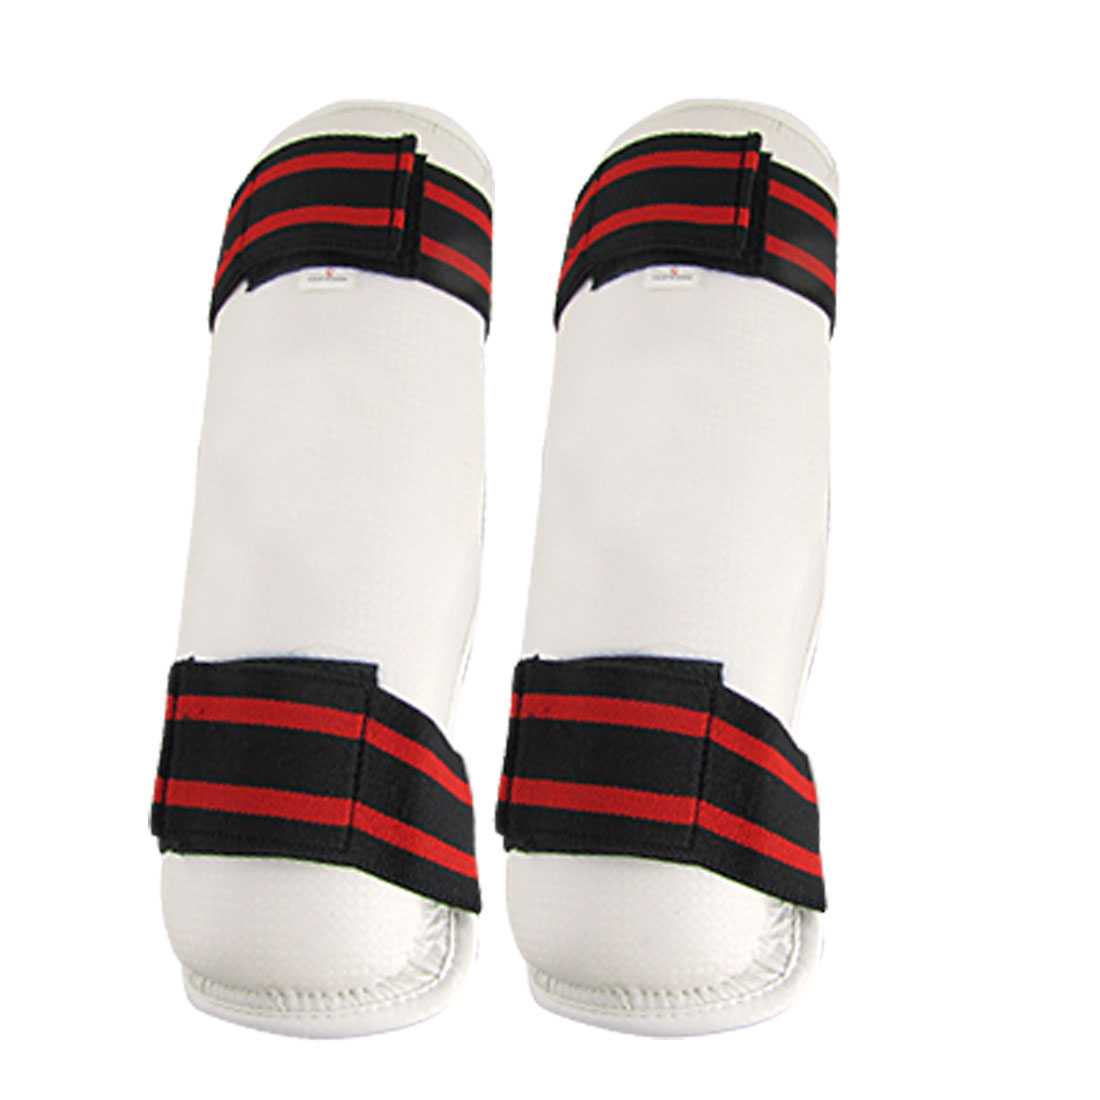 White Sparring Taekwondo PU Leather Shin Protectors Guards 2 Pcs